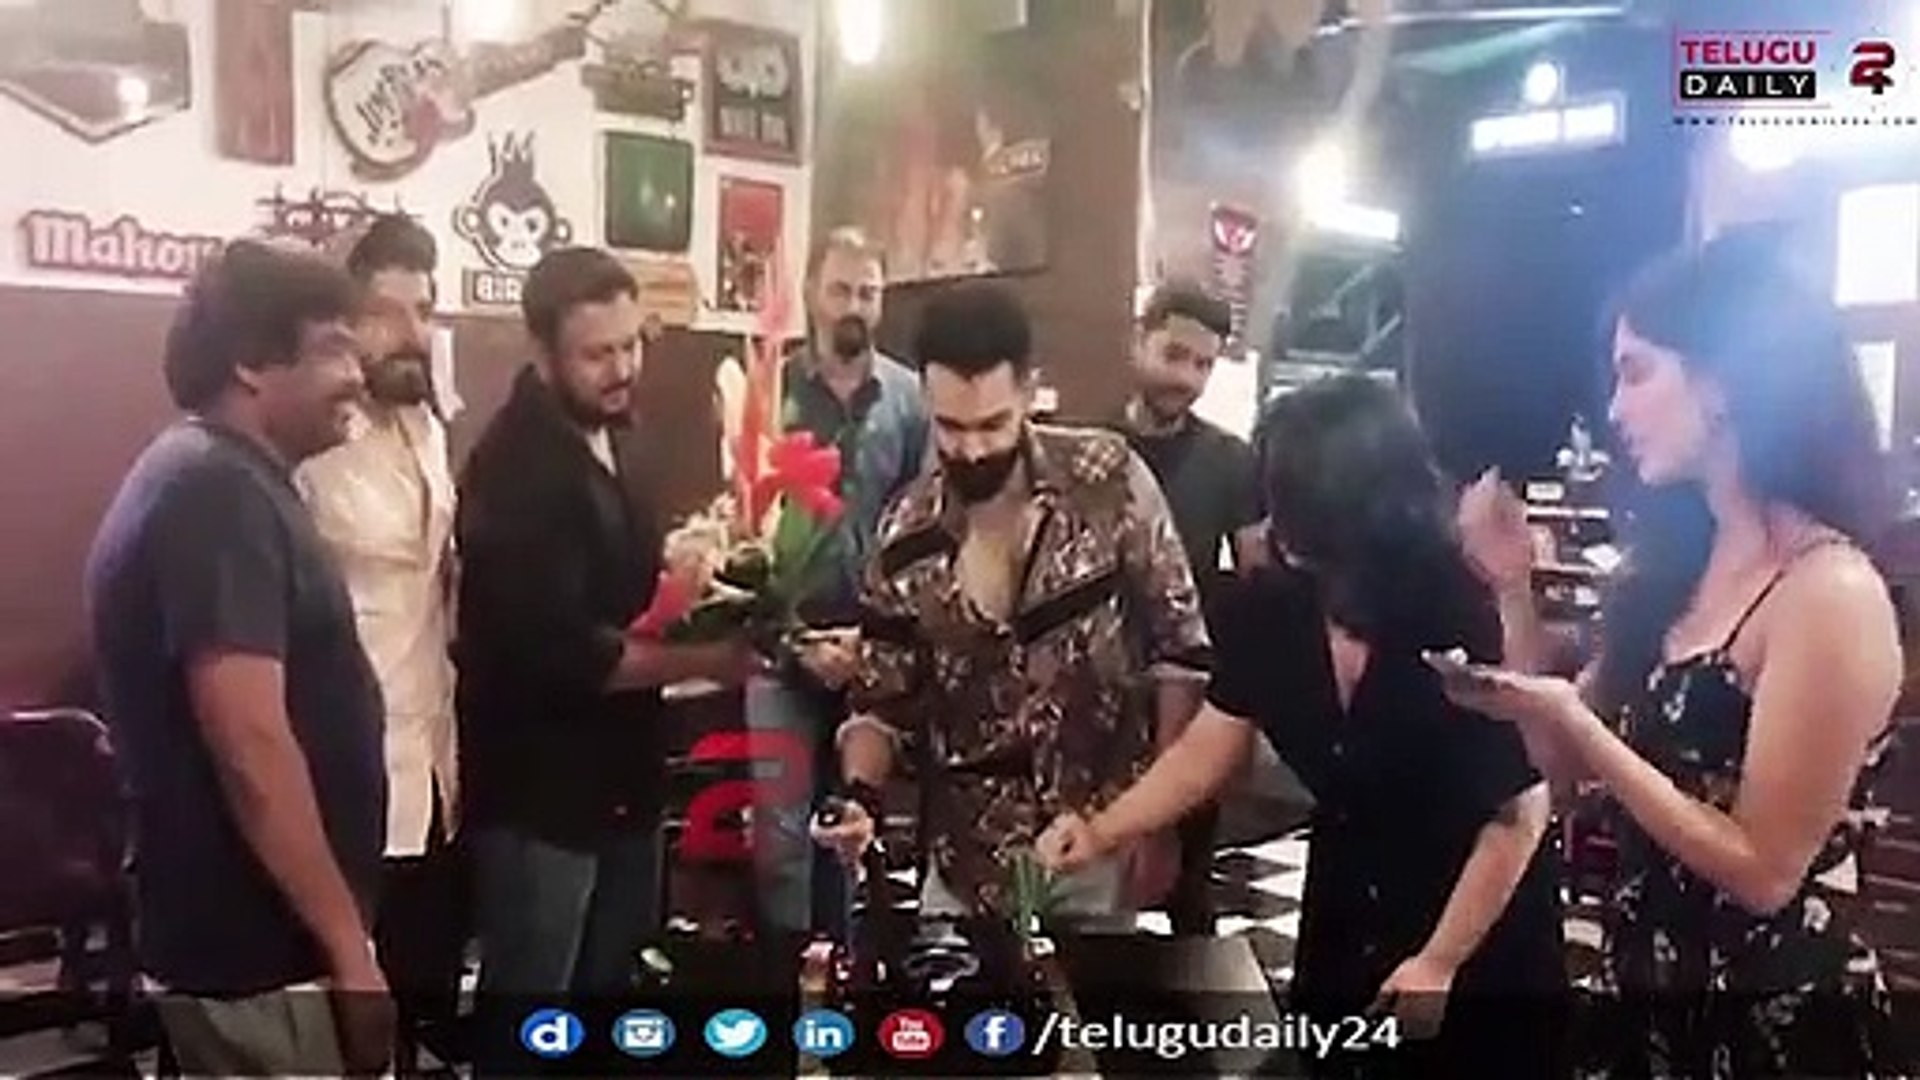 Hero Ram Birthday Celebrations With Ismart Shankar Team || TeluguDaily24